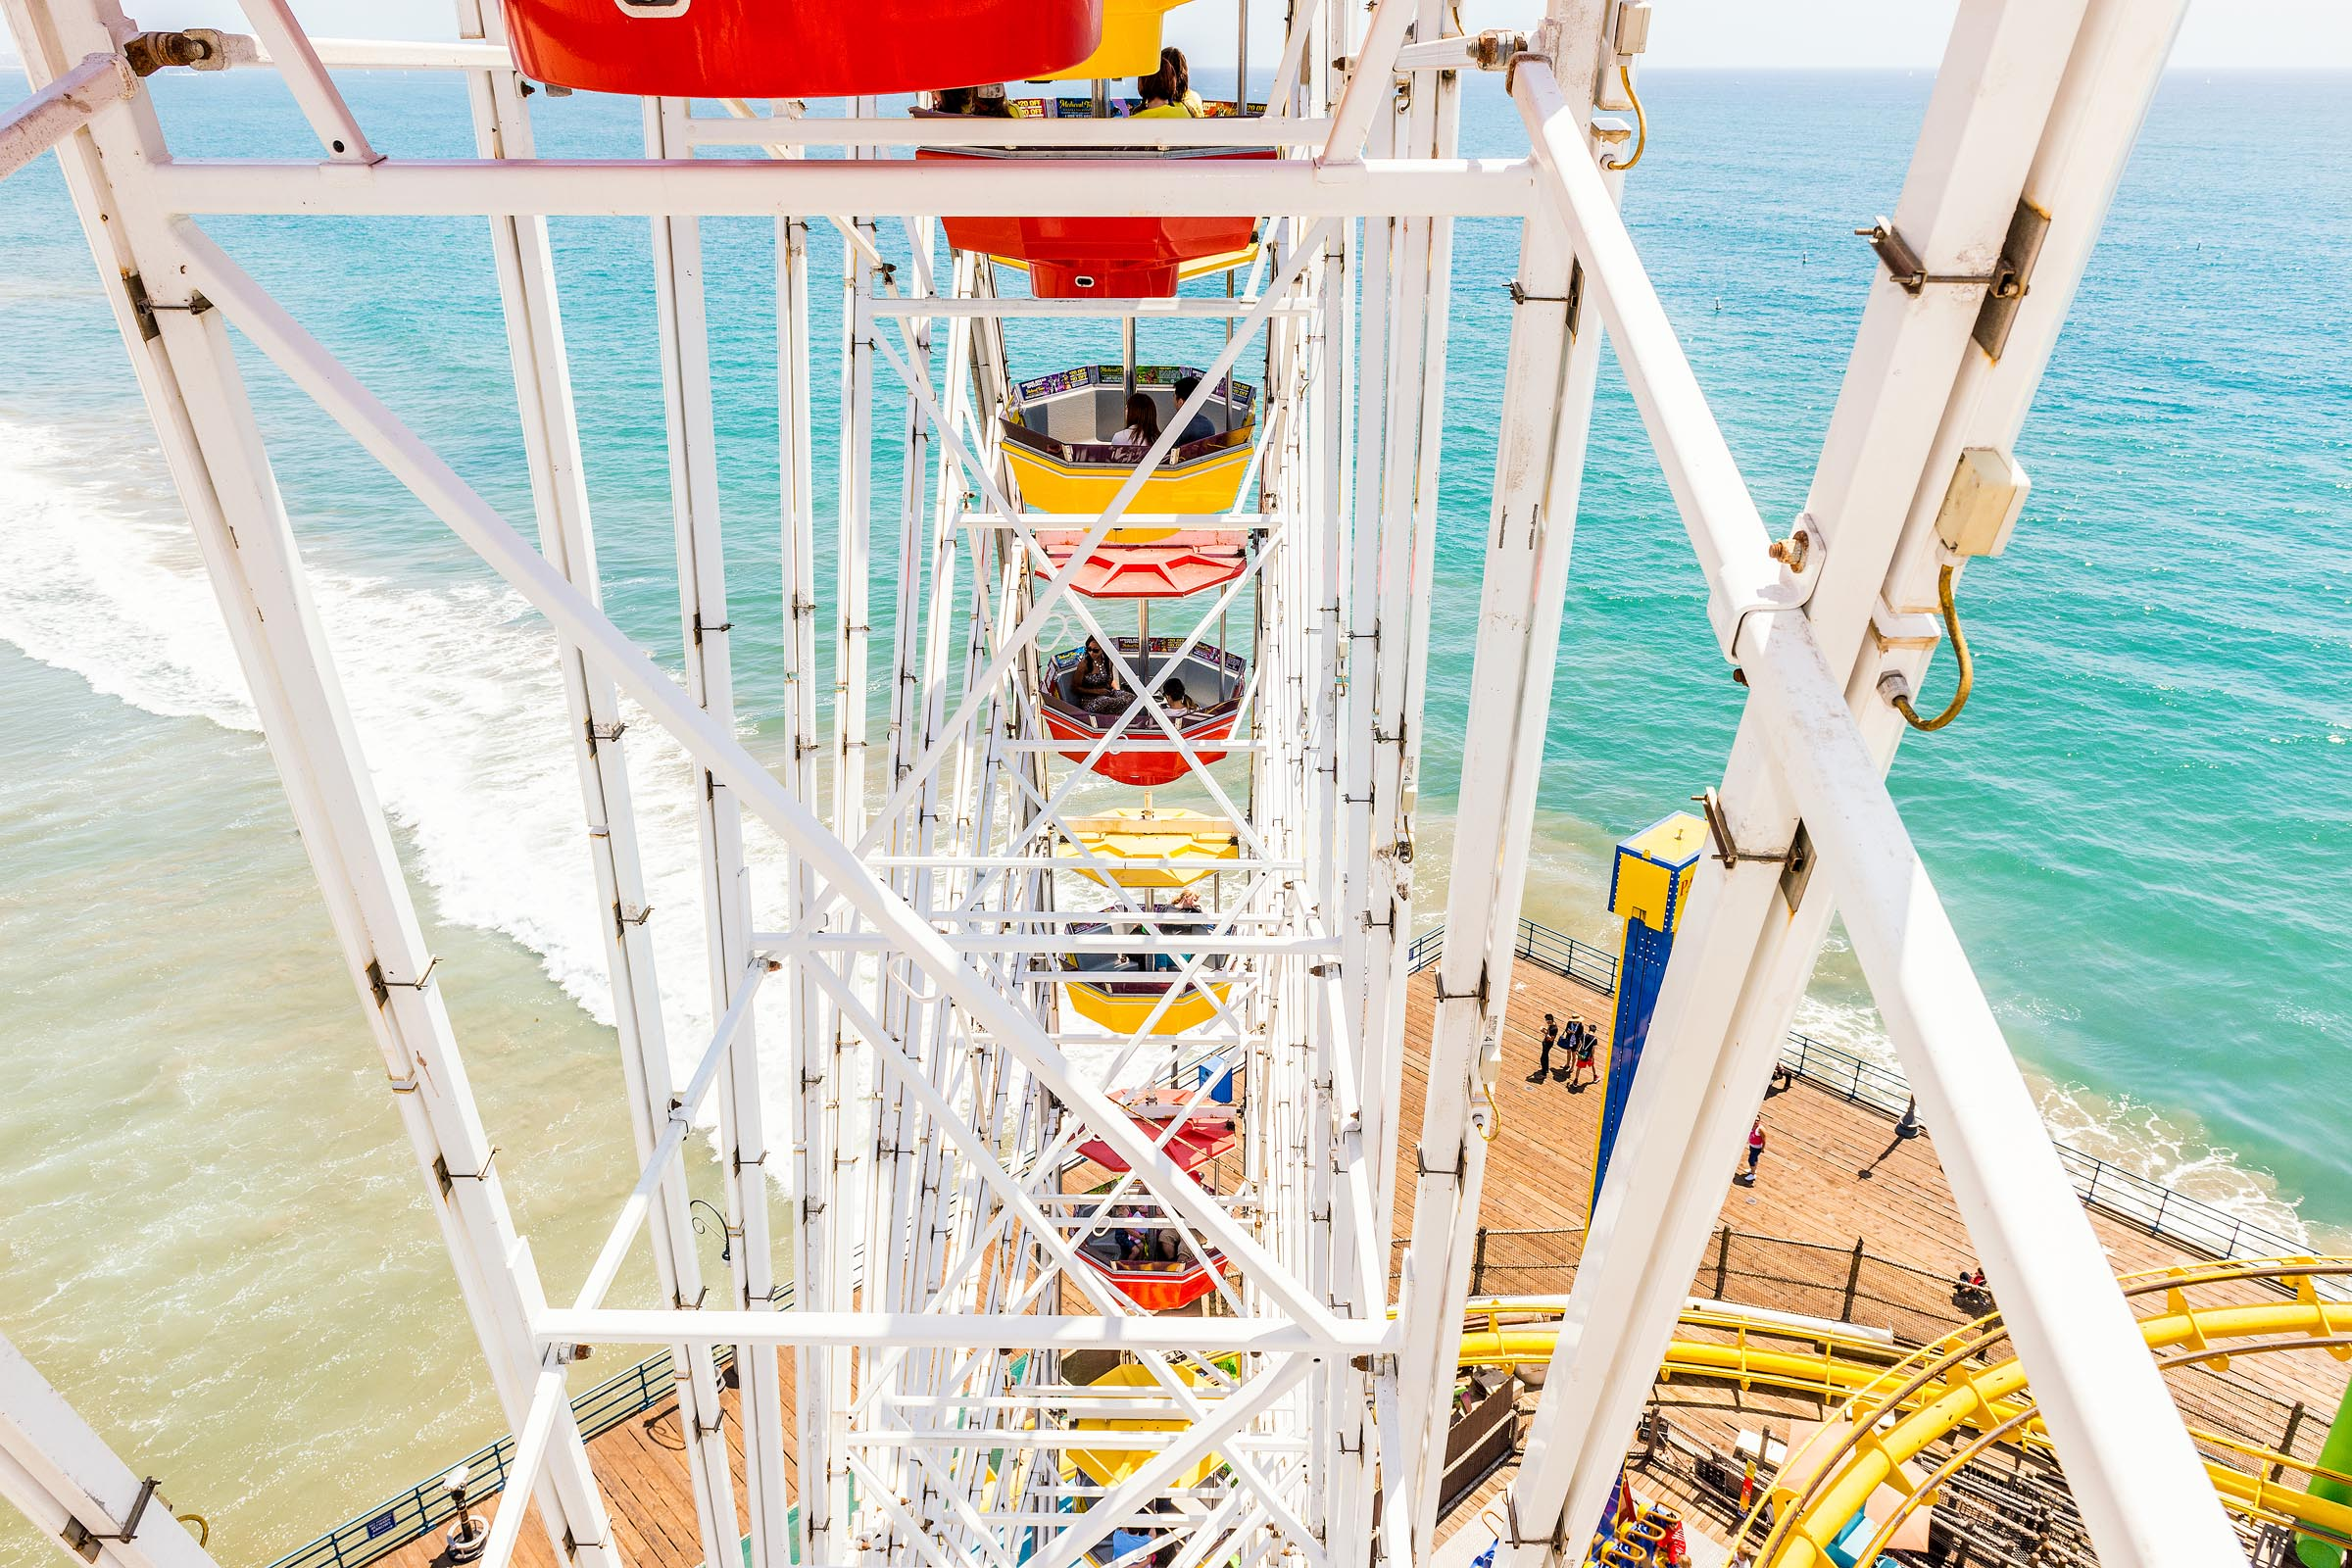 Photograph of Ferris Wheel in Santa Monica, California by Brent Goldman Photography